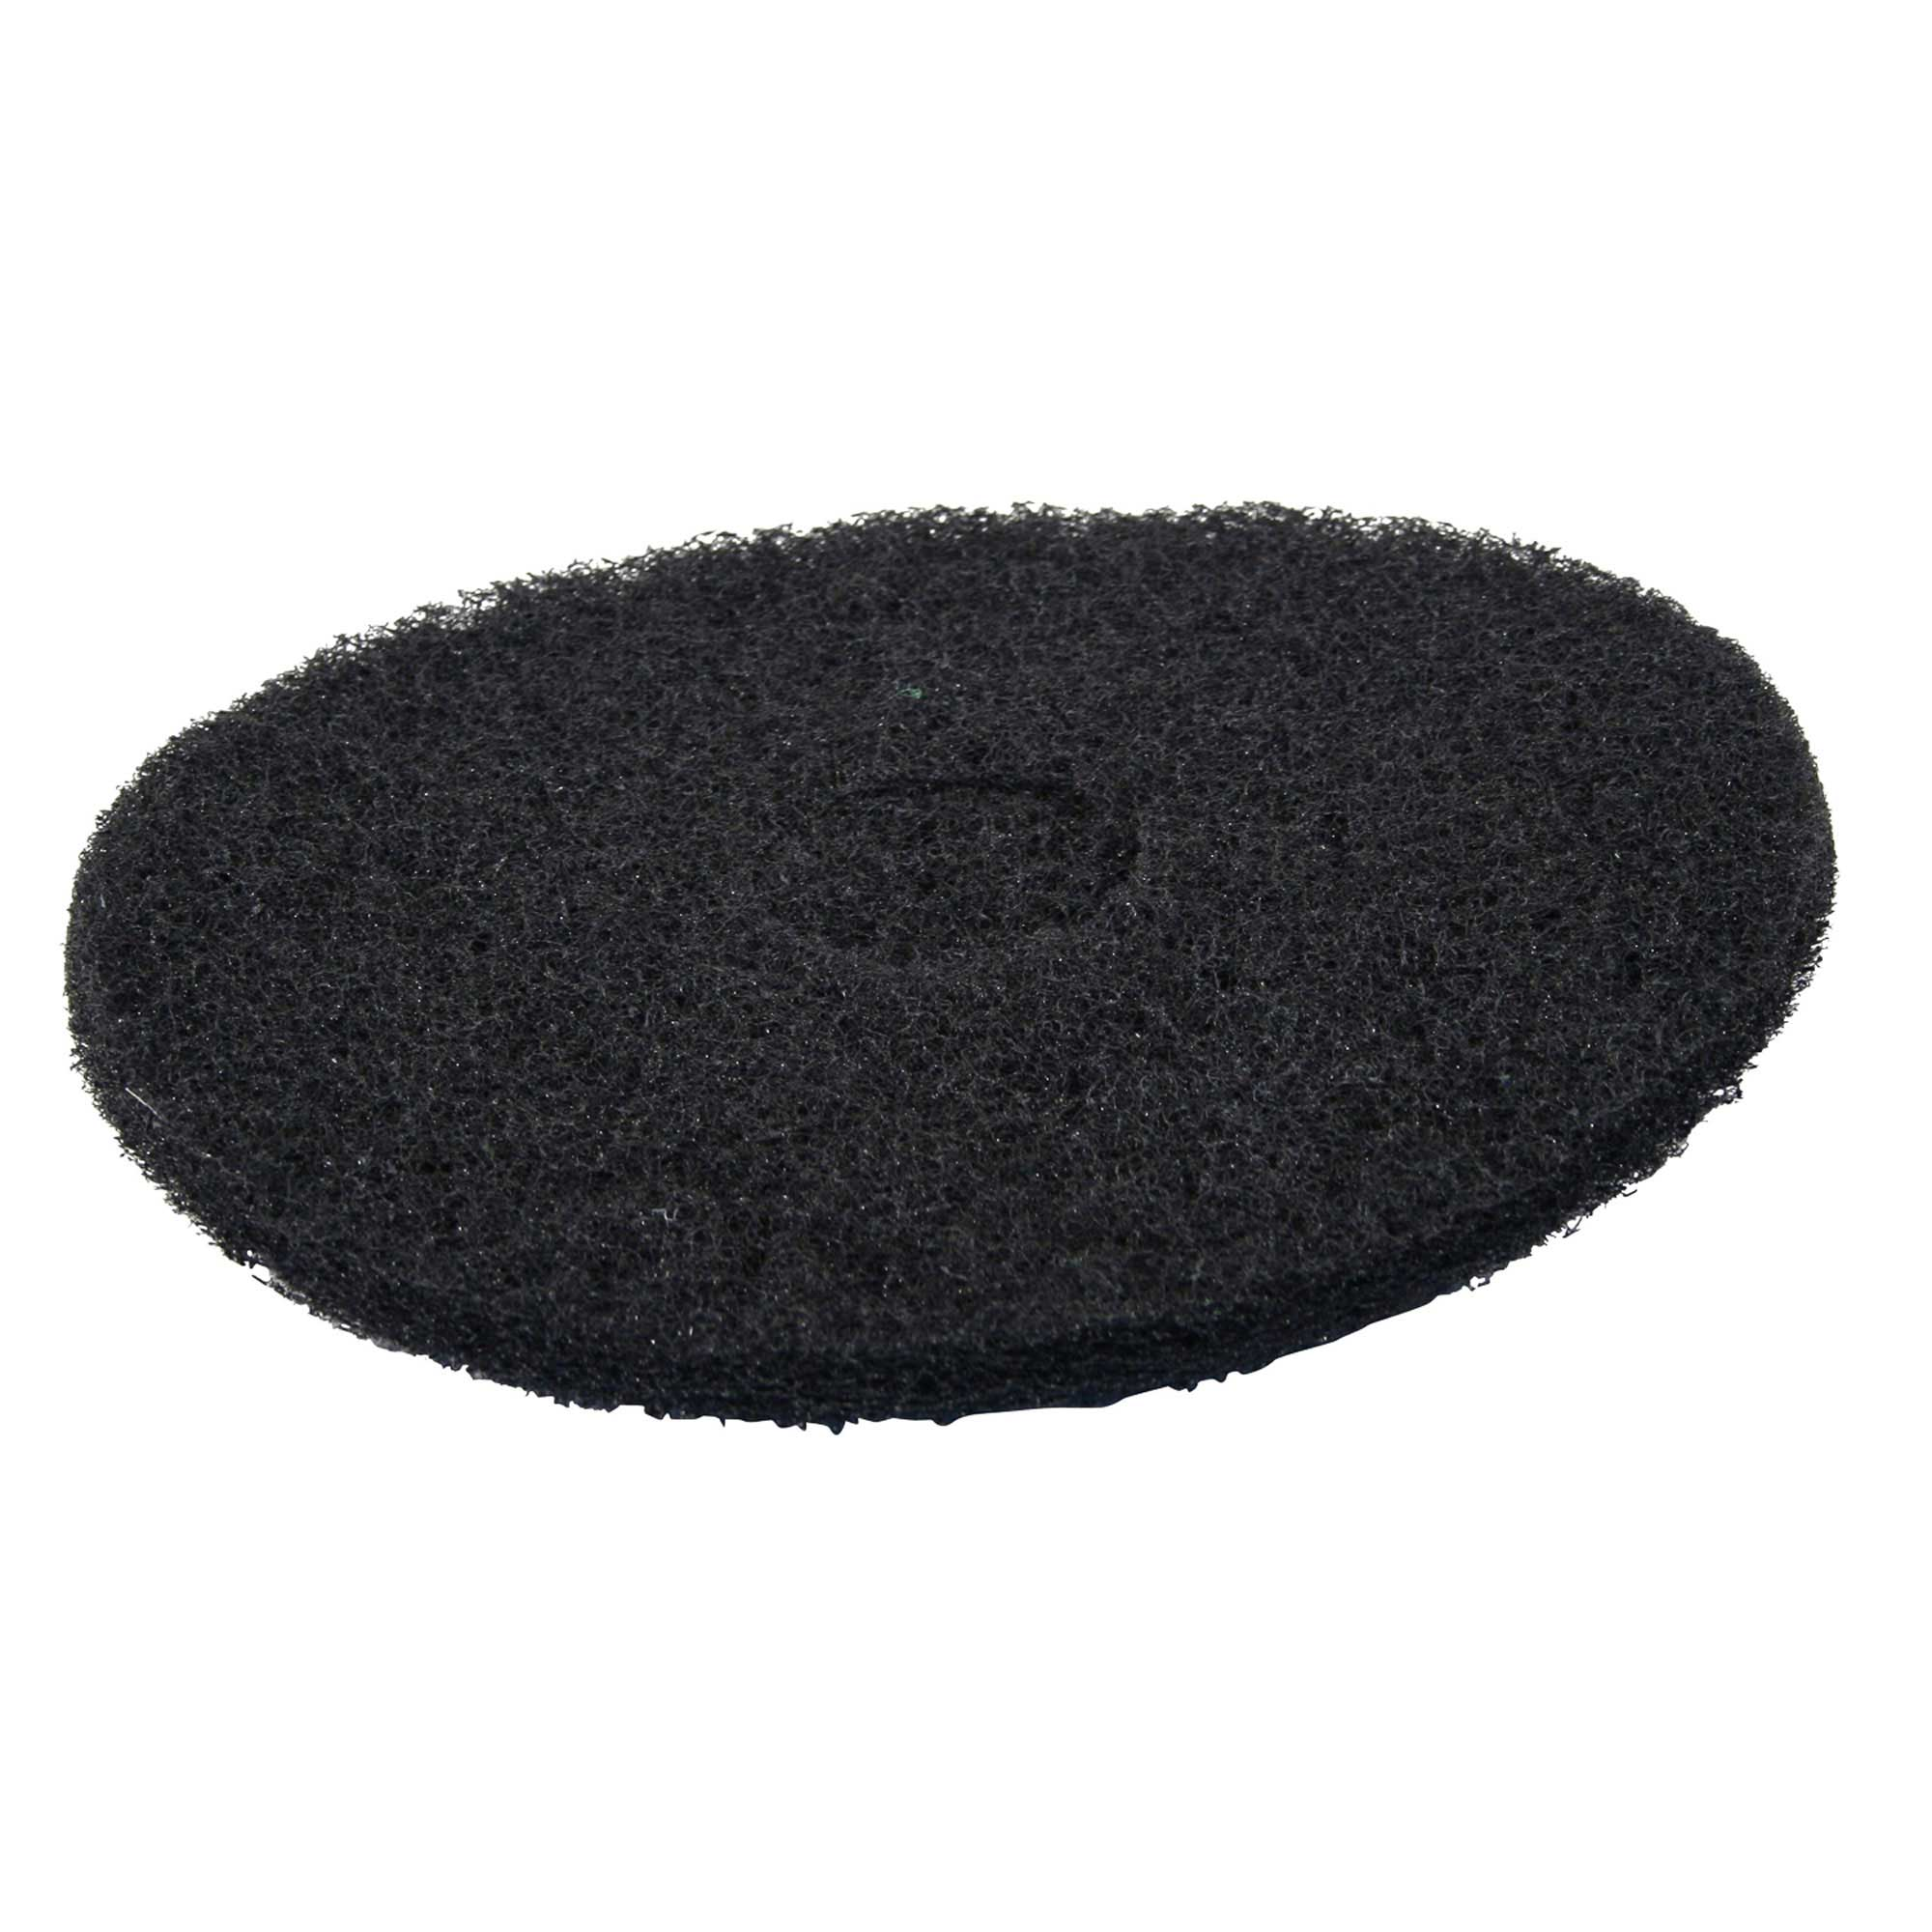 1430220 High Performance Pad dikte 25 mm tot 350 toeren 17 inch paar